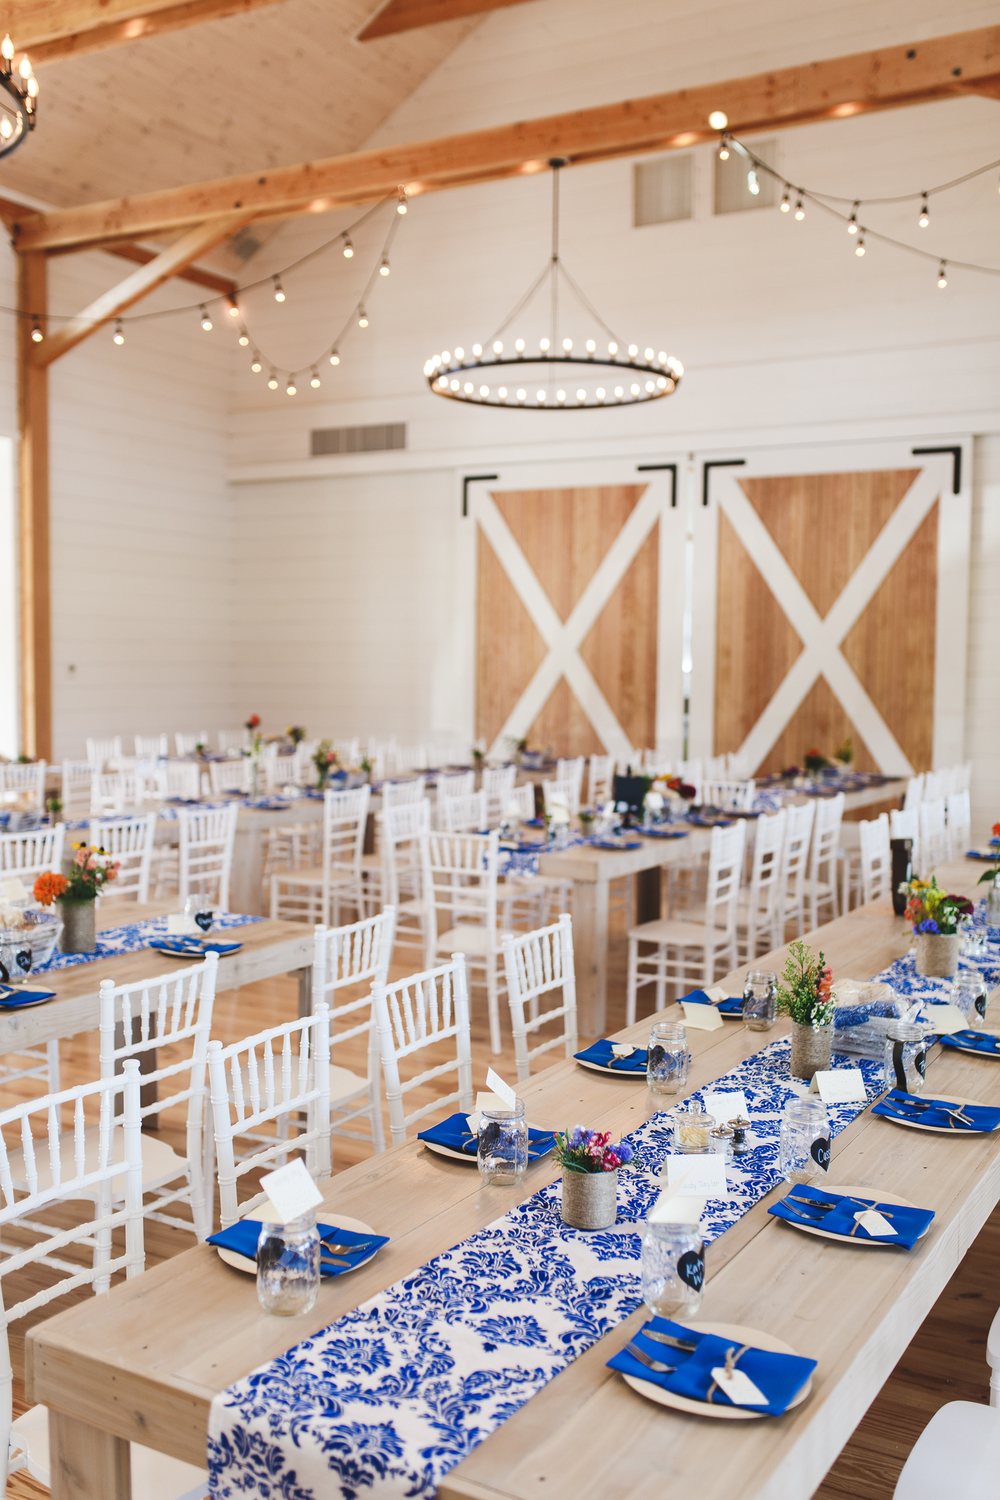 Long table and interior of venue at the Barn at Smuggs, Jeffersonville, VT